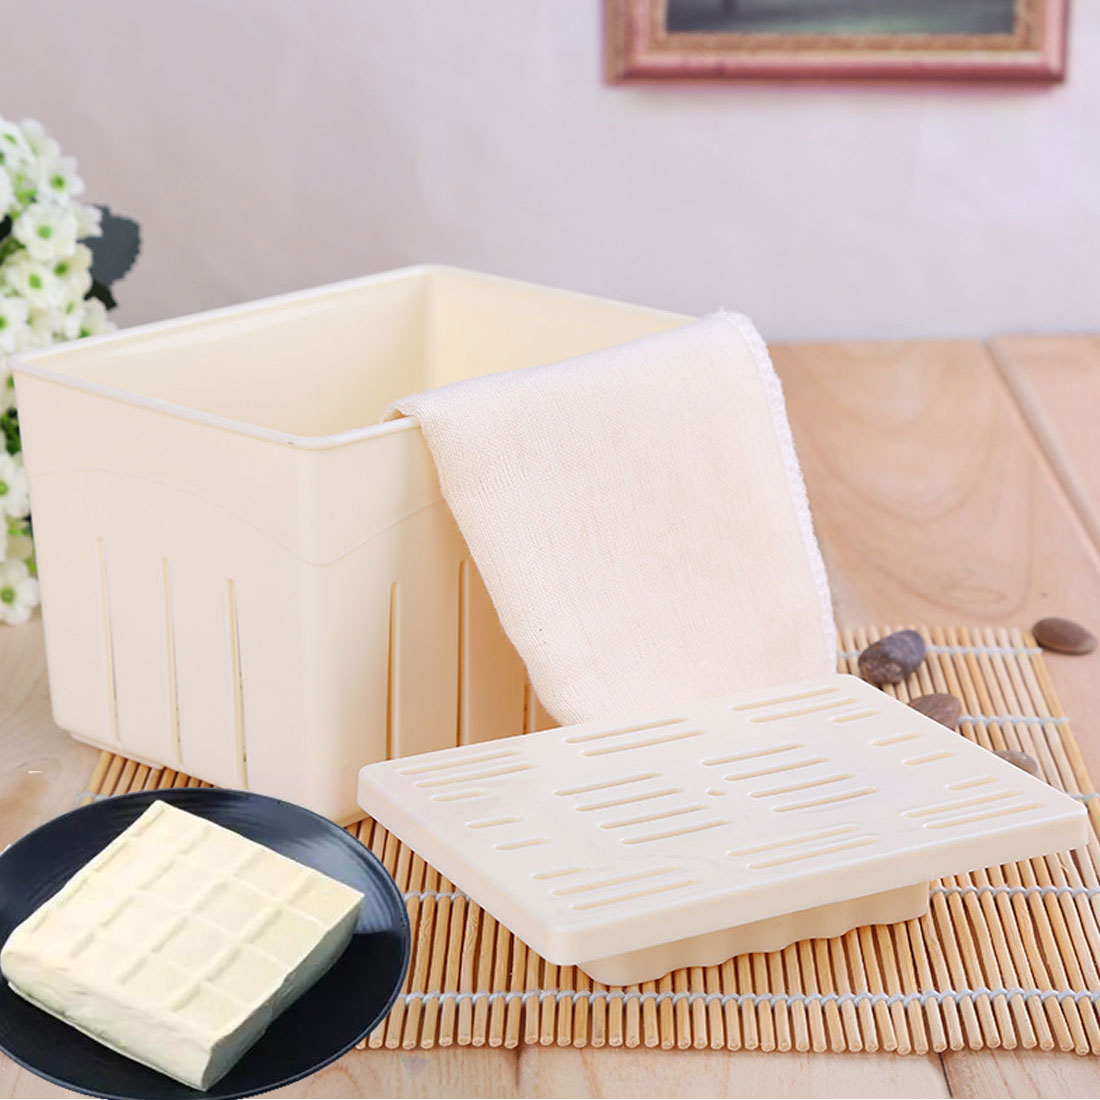 DIY Tofu Mold Plastic Tofu Press <font><b>Mould</b></font> Homemade Soybean Curd Tofu Making Mold With <font><b>Cheese</b></font> Cloth Kitchen Cooking Tool Set image